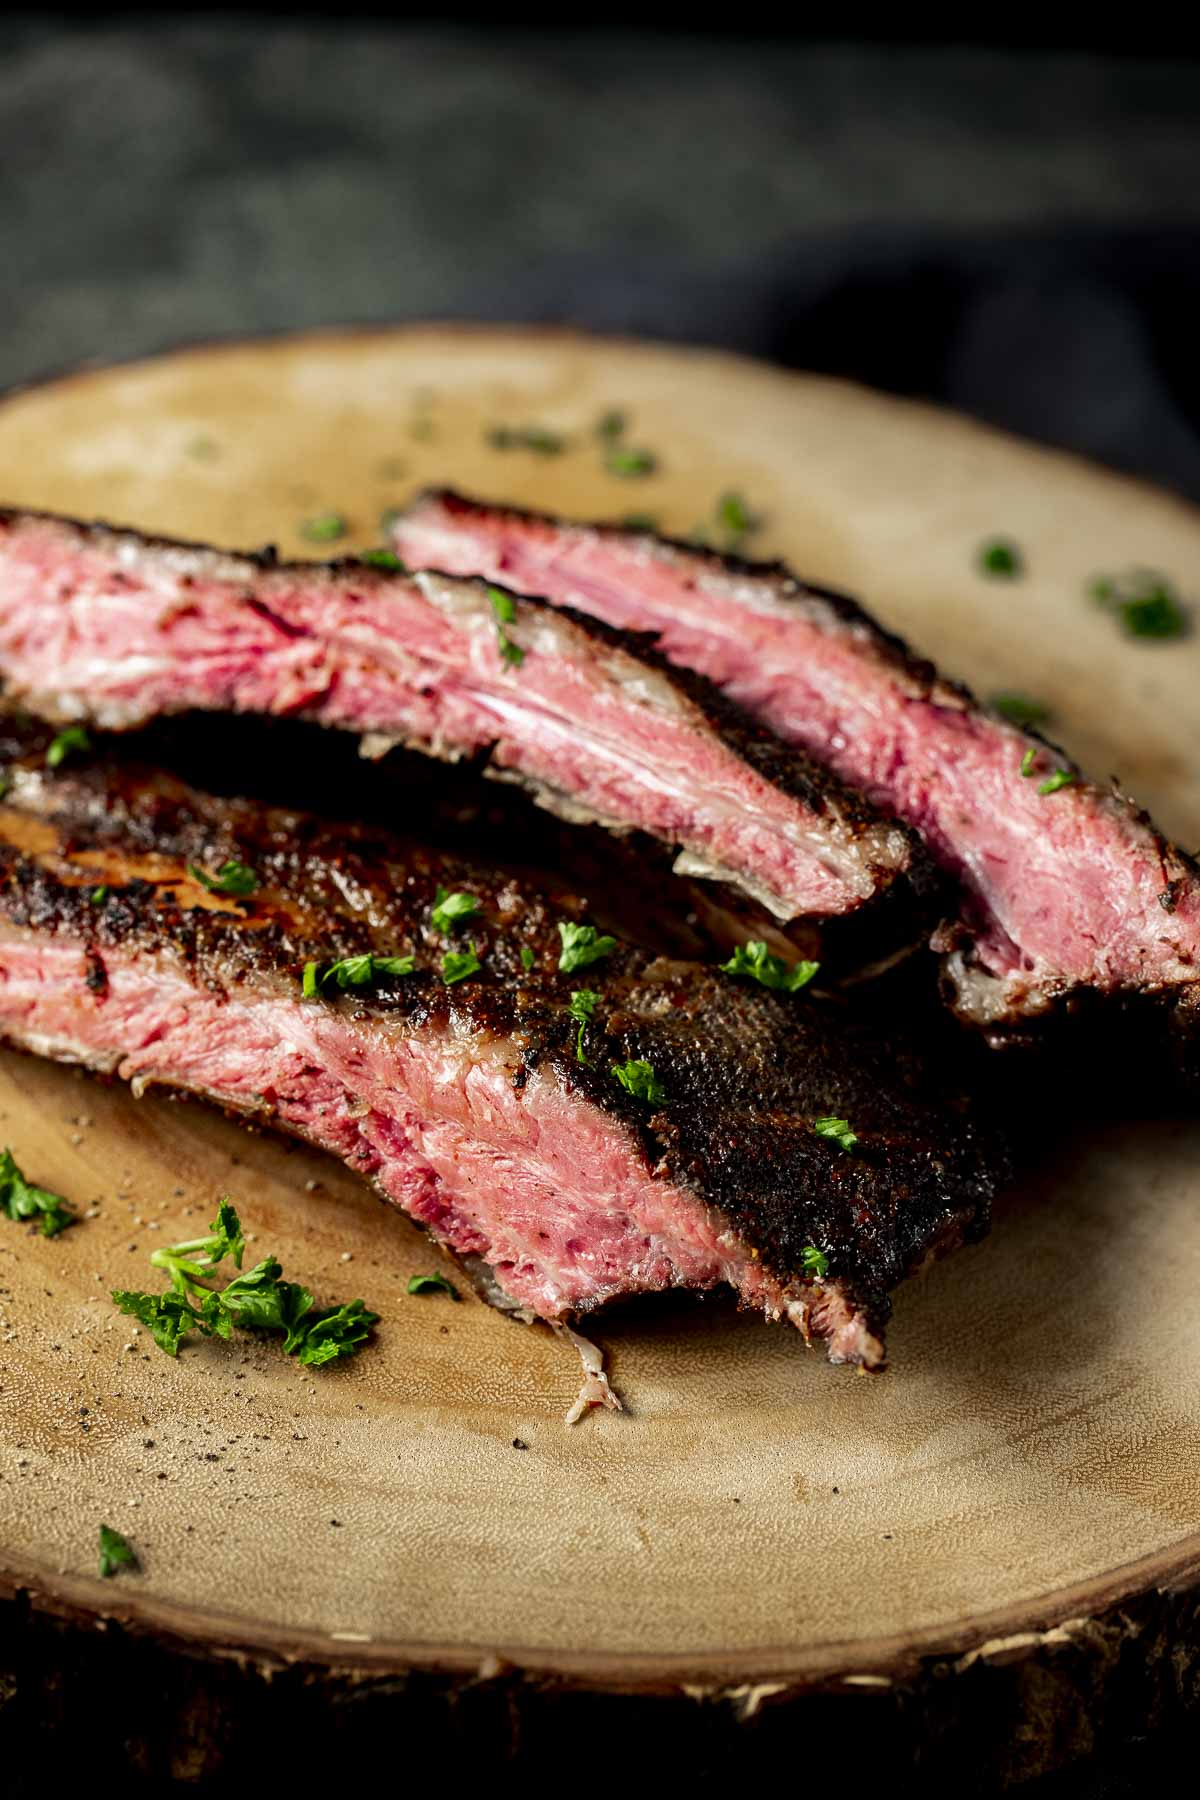 Beef ribs cut into slices and arranged on a wooden board.